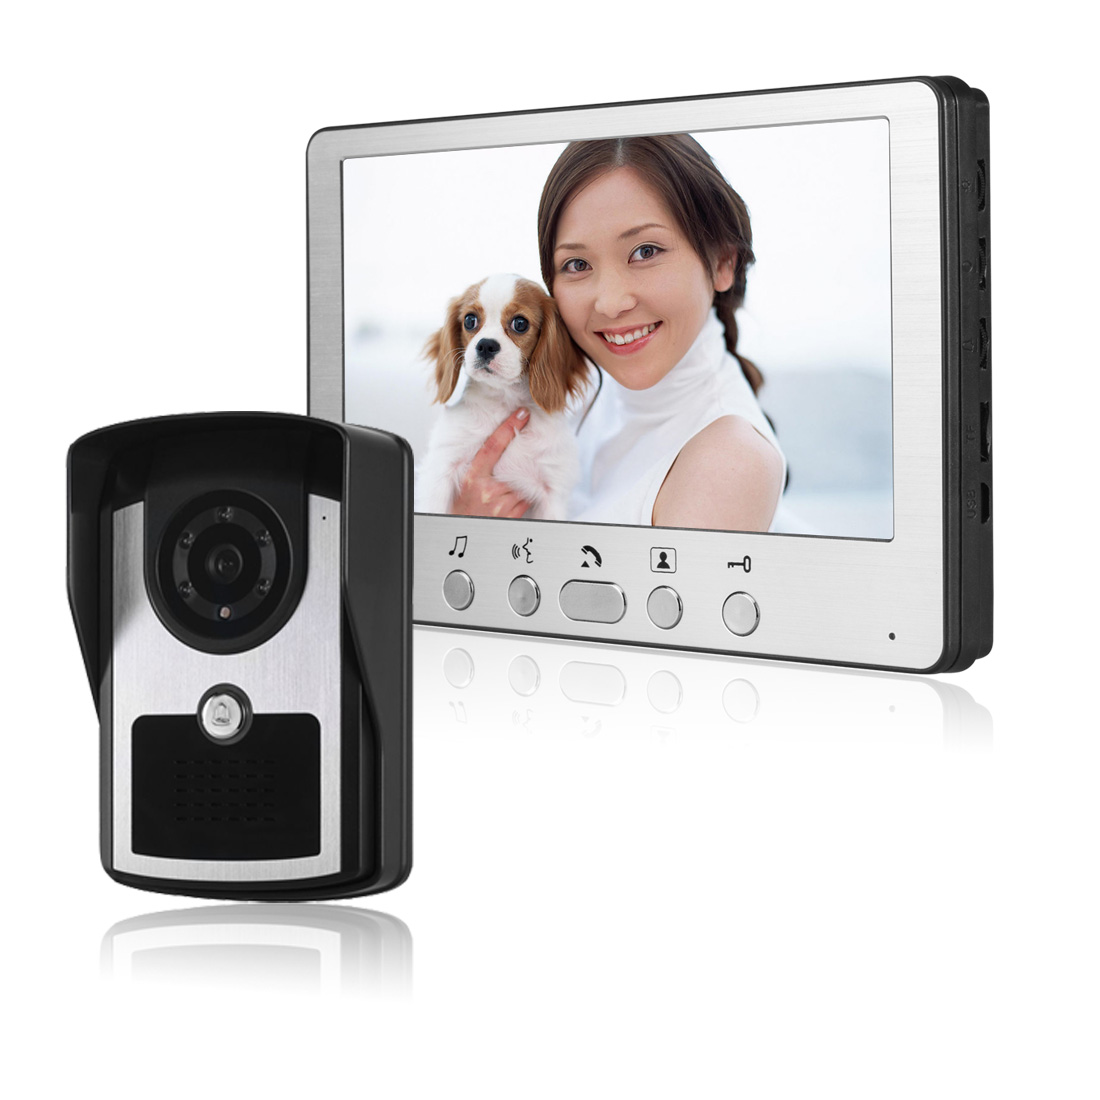 FREE SHIPPING NEW Wired 7 Color Screen Video Door Phone Intercom System + IR Night Vision Outdoor Doorbell Camera Home Security тональная основа by terry sheer expert 6 цвет 6 flush beige variant hex name f9b99c